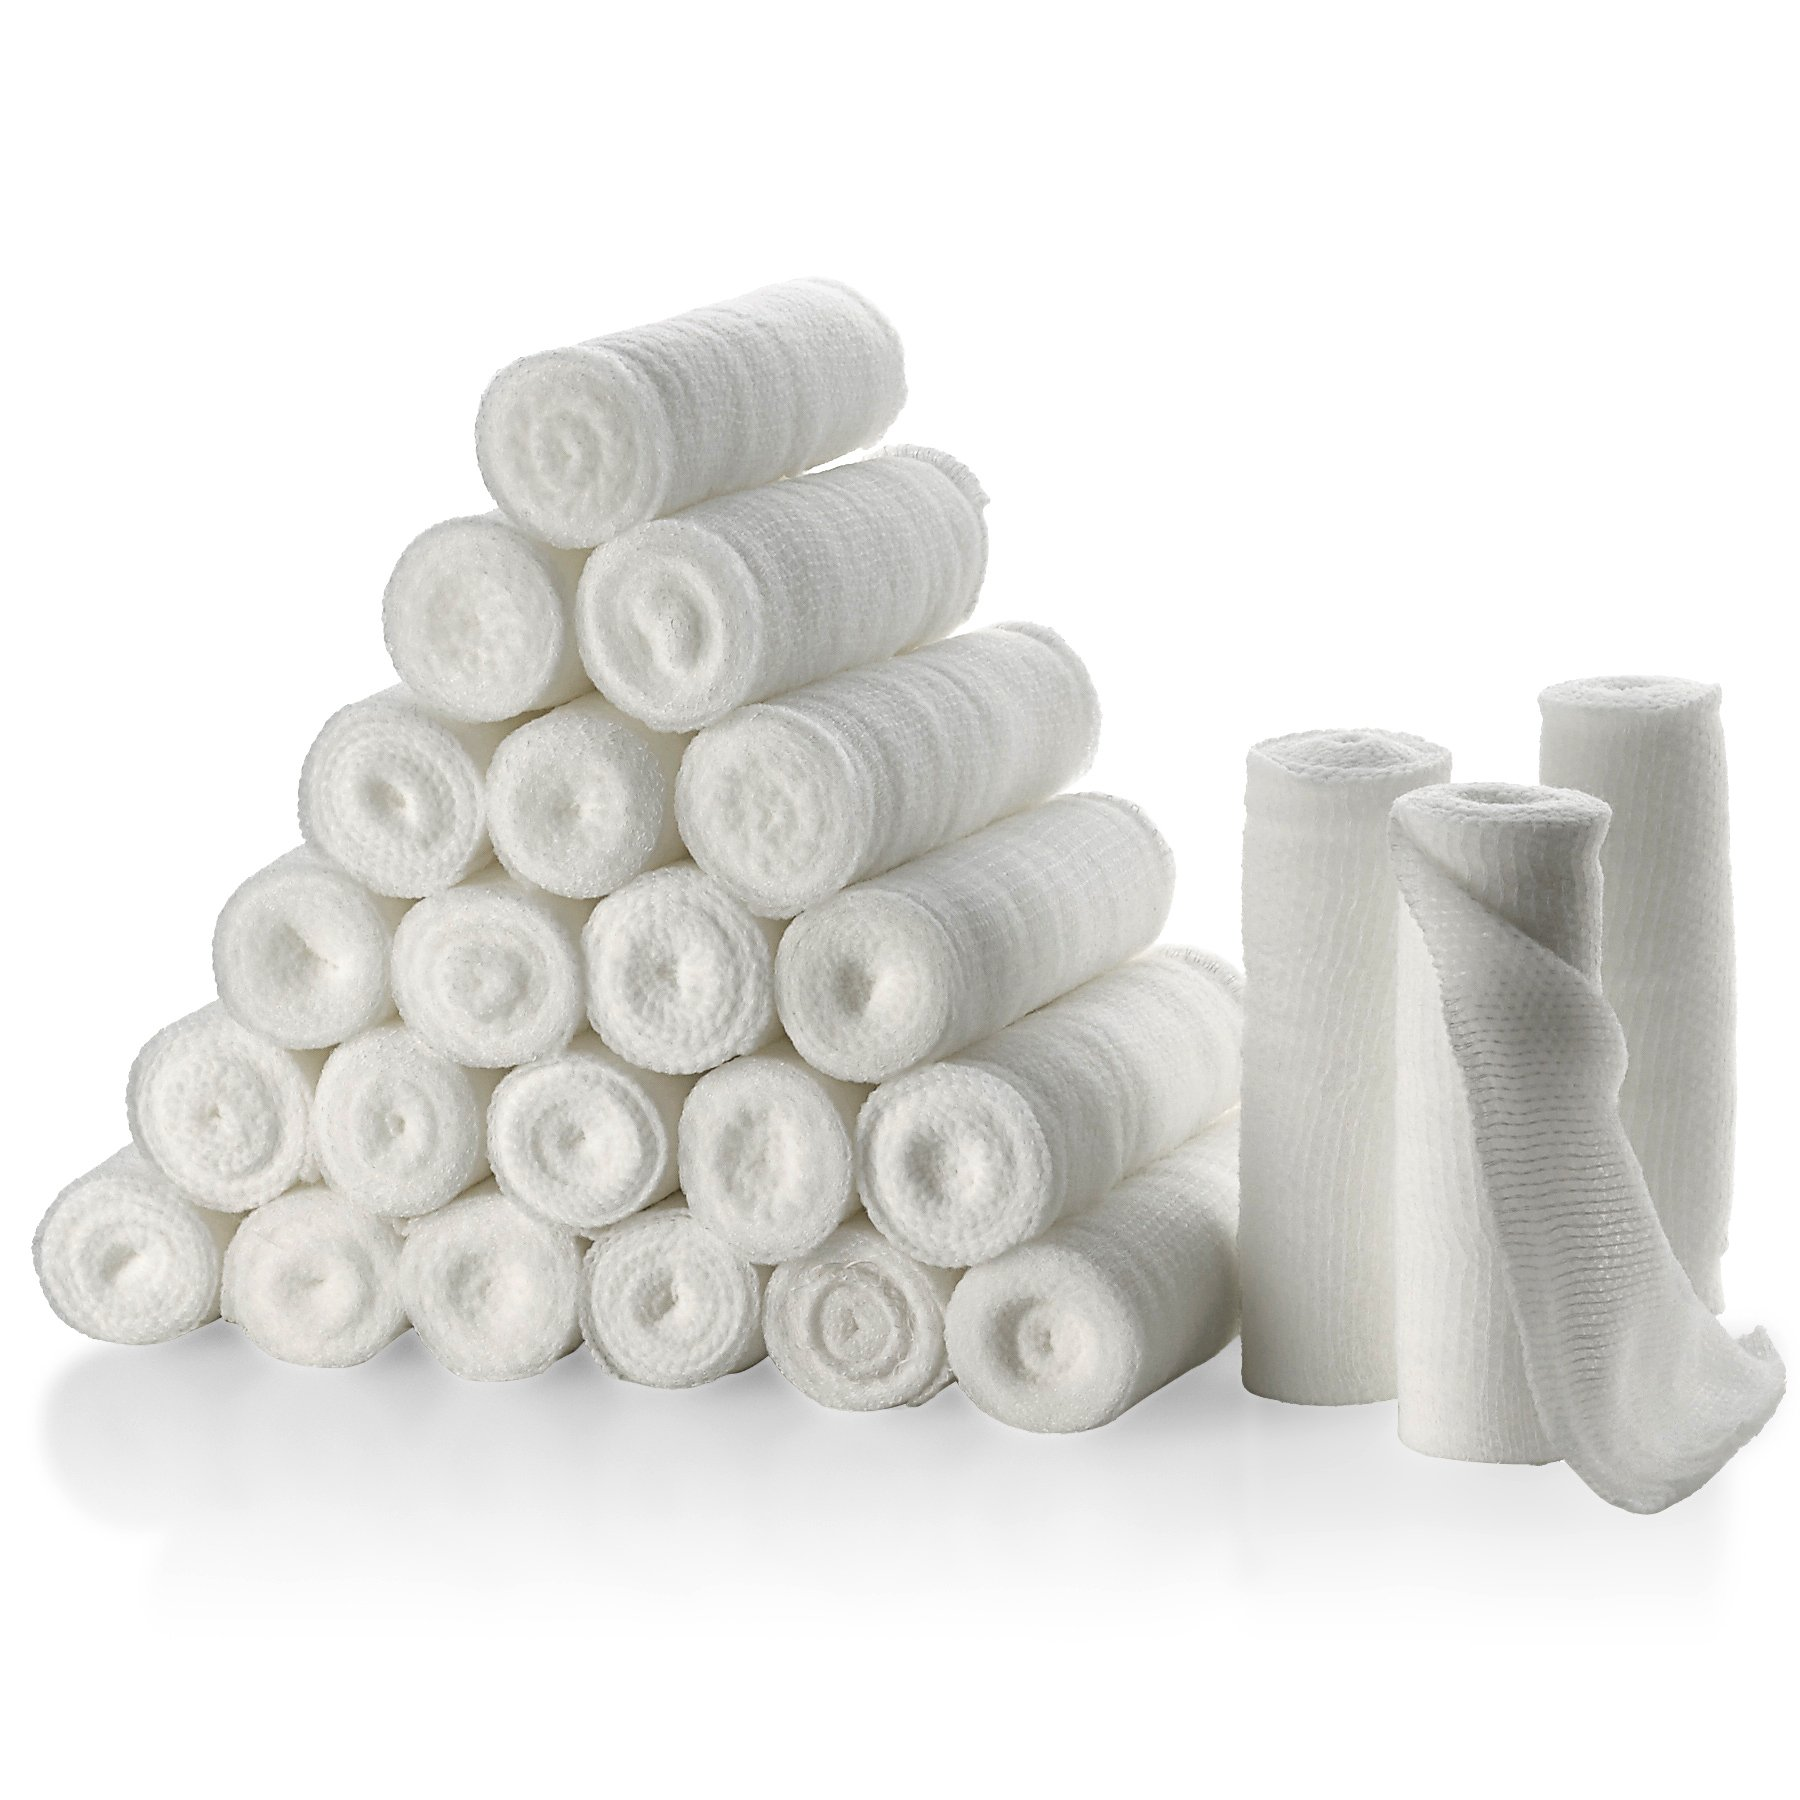 "Gauze Bandage Rolls - Pack or 24, 4"" x 4 Yards Per Roll of Medical Grade Gauze Bandage and Stretch Bandage Wrapping for Dressing All Types of Wounds and First Aid Kit by MEDca"